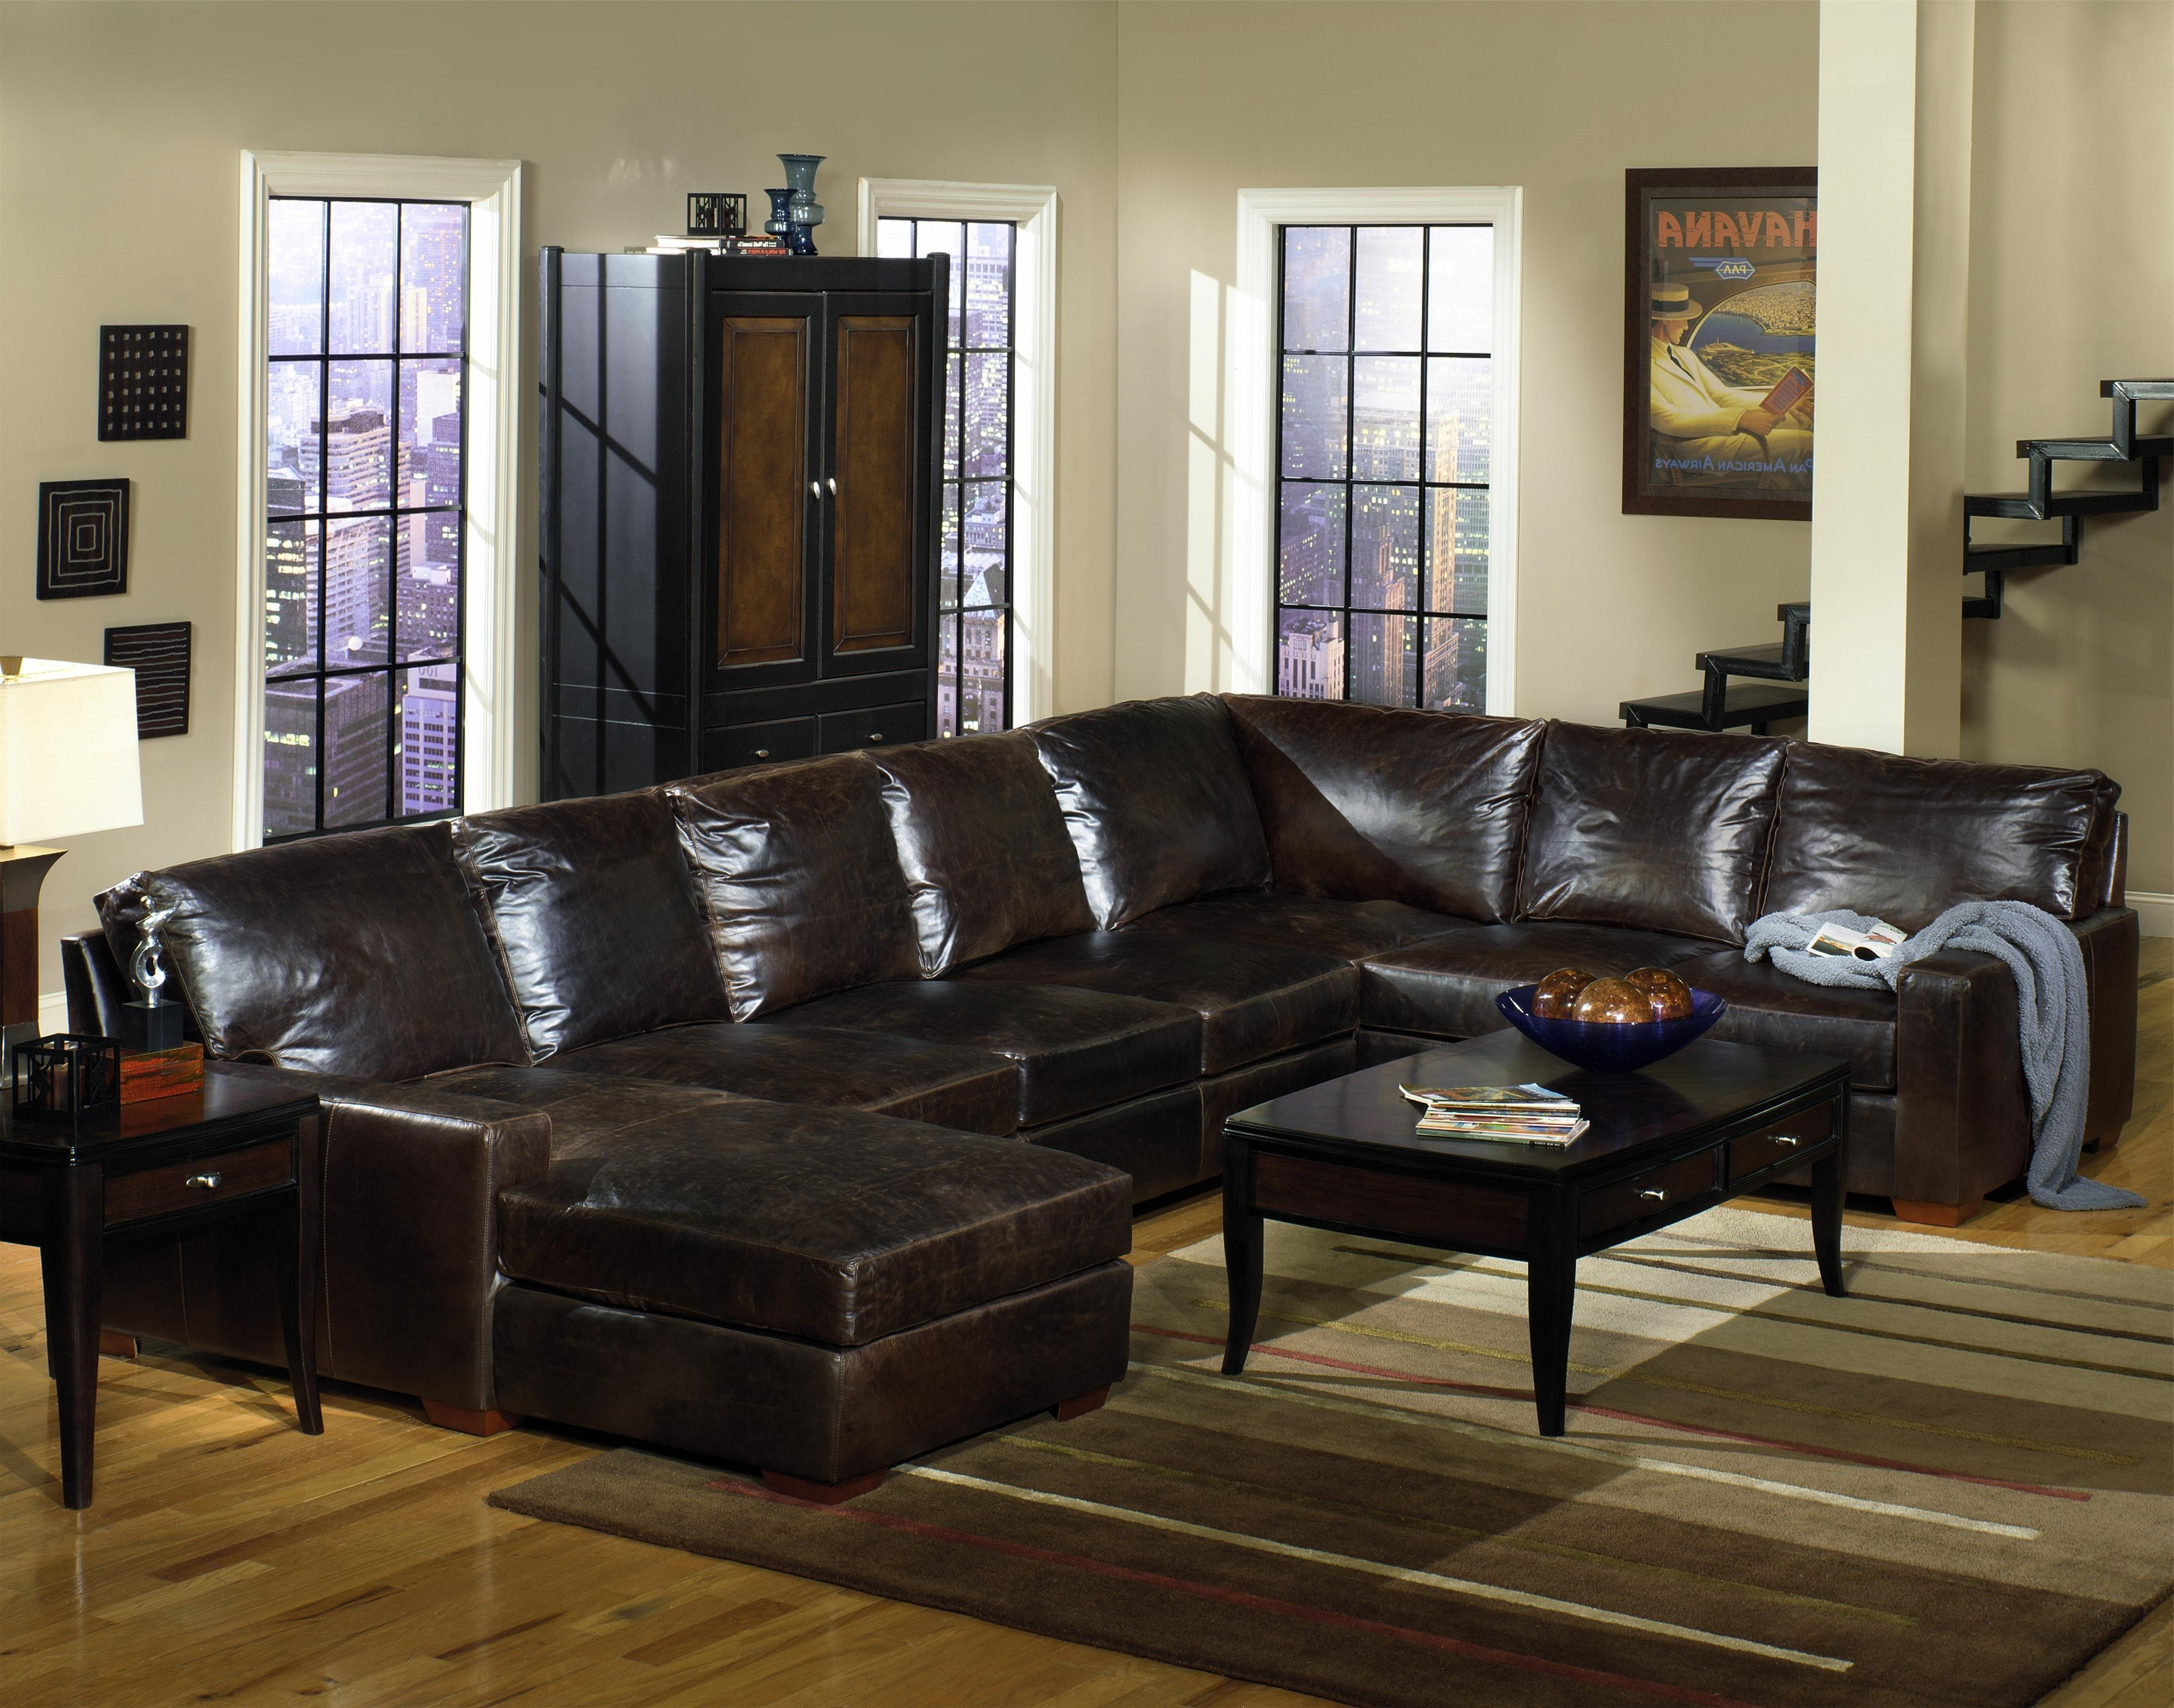 Widely Used Leather Chaise Sectionals In Usa Premium Leather 9935 Track Arm Sofa Chaise Sectional (View 15 of 15)